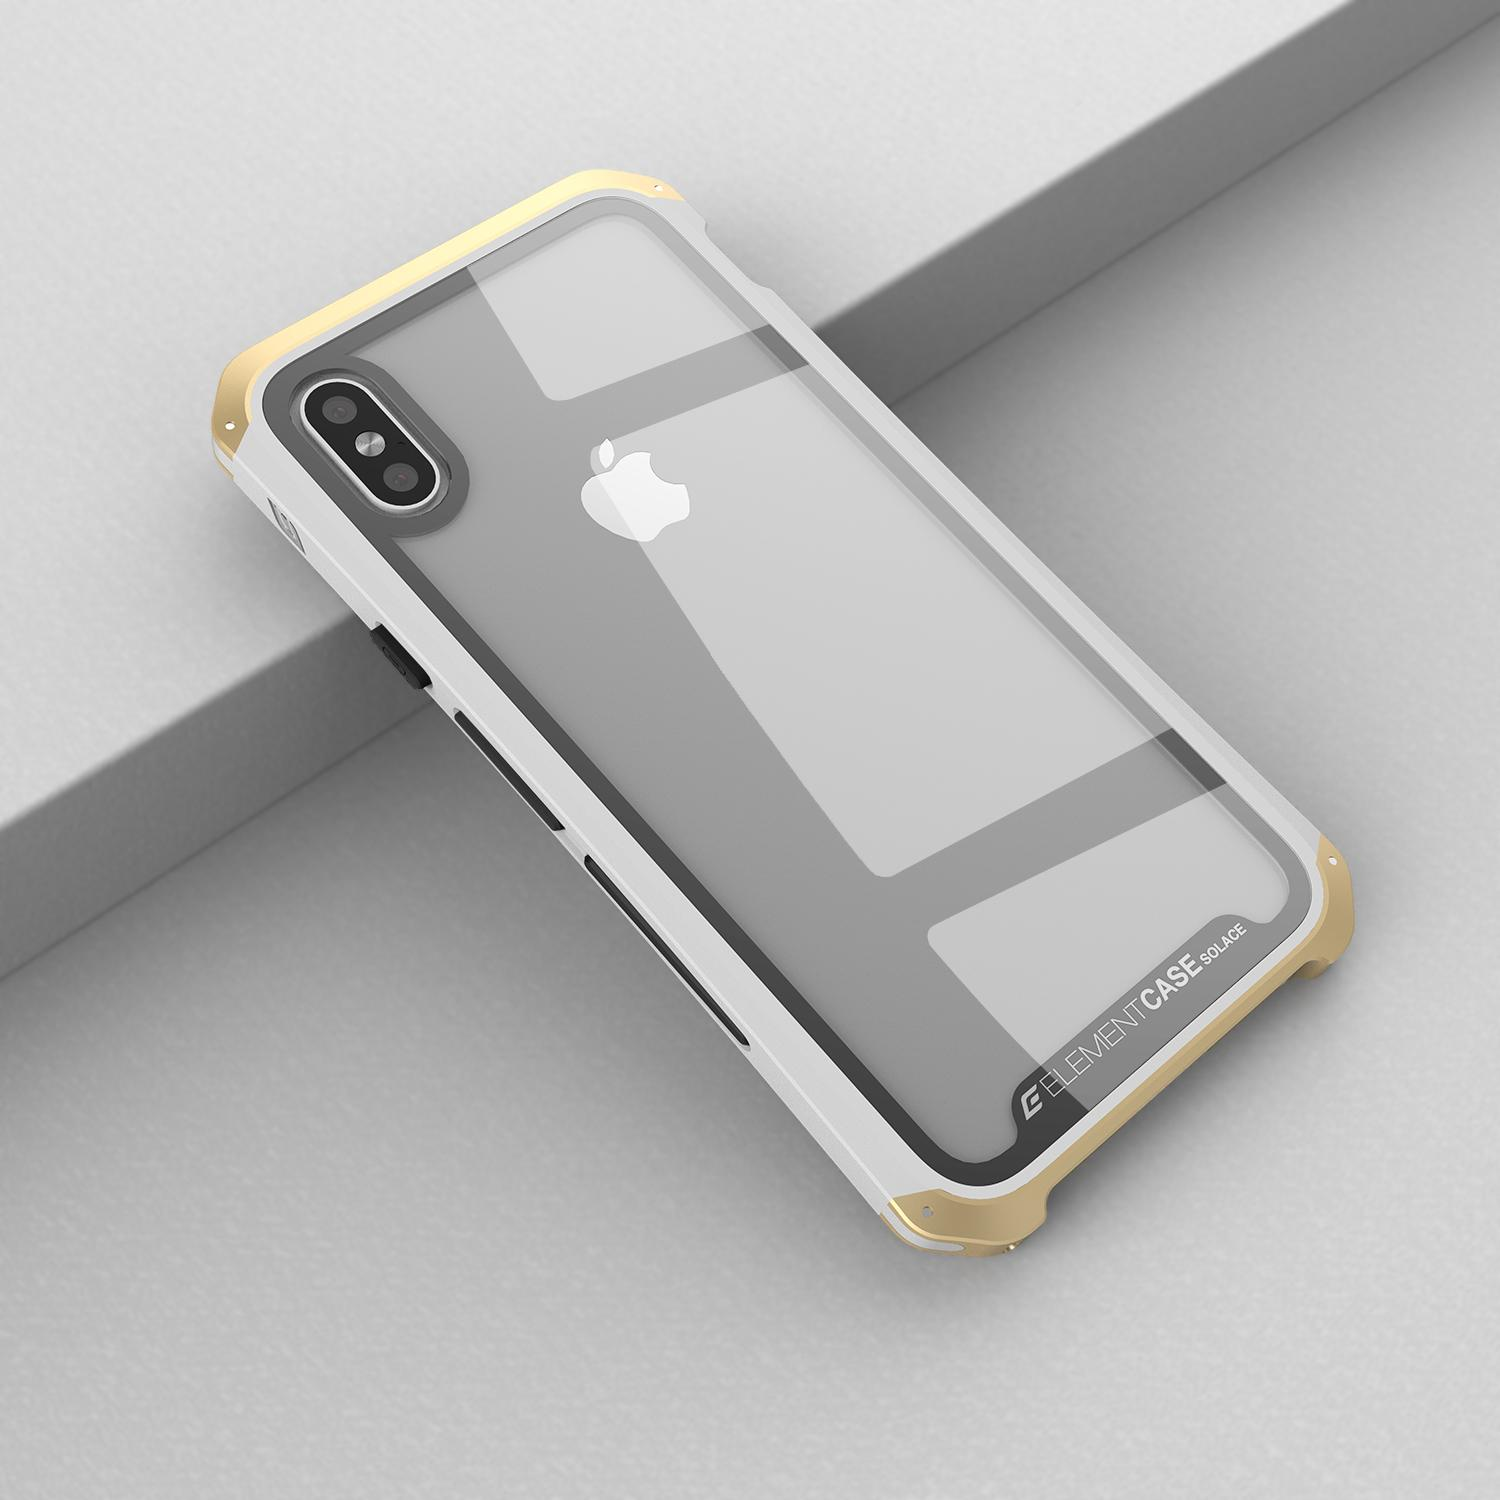 buy popular 619b0 7a279 For iphone X Metal Framed Glass Steel Phone case Hard Shockproof Cover For  iphone 8 7 plus 2 in 1 Hybrid Armor Retail Package Aicoo